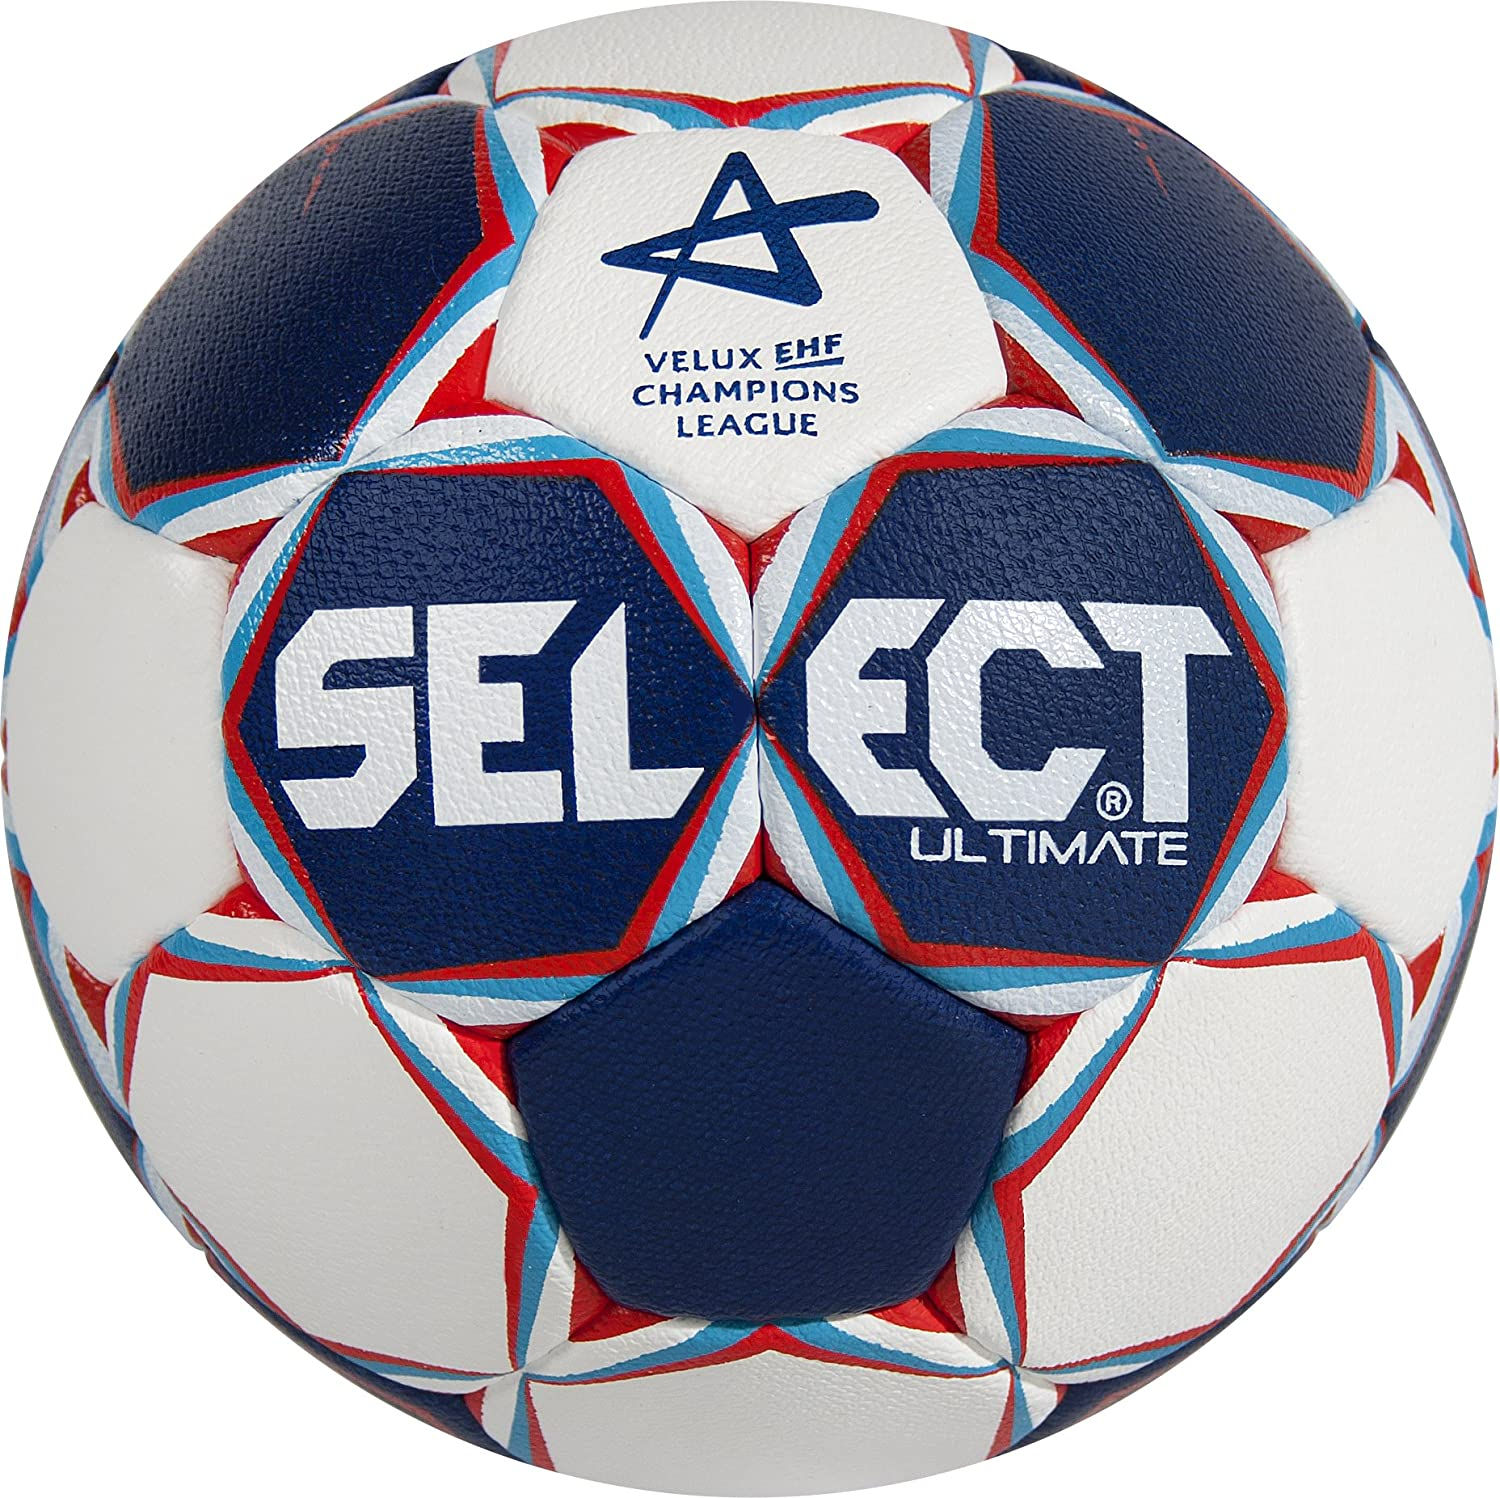 SELECT Balón de Balonmano Ultimate CL, Blanco/Azul/Rojo, 3 ...